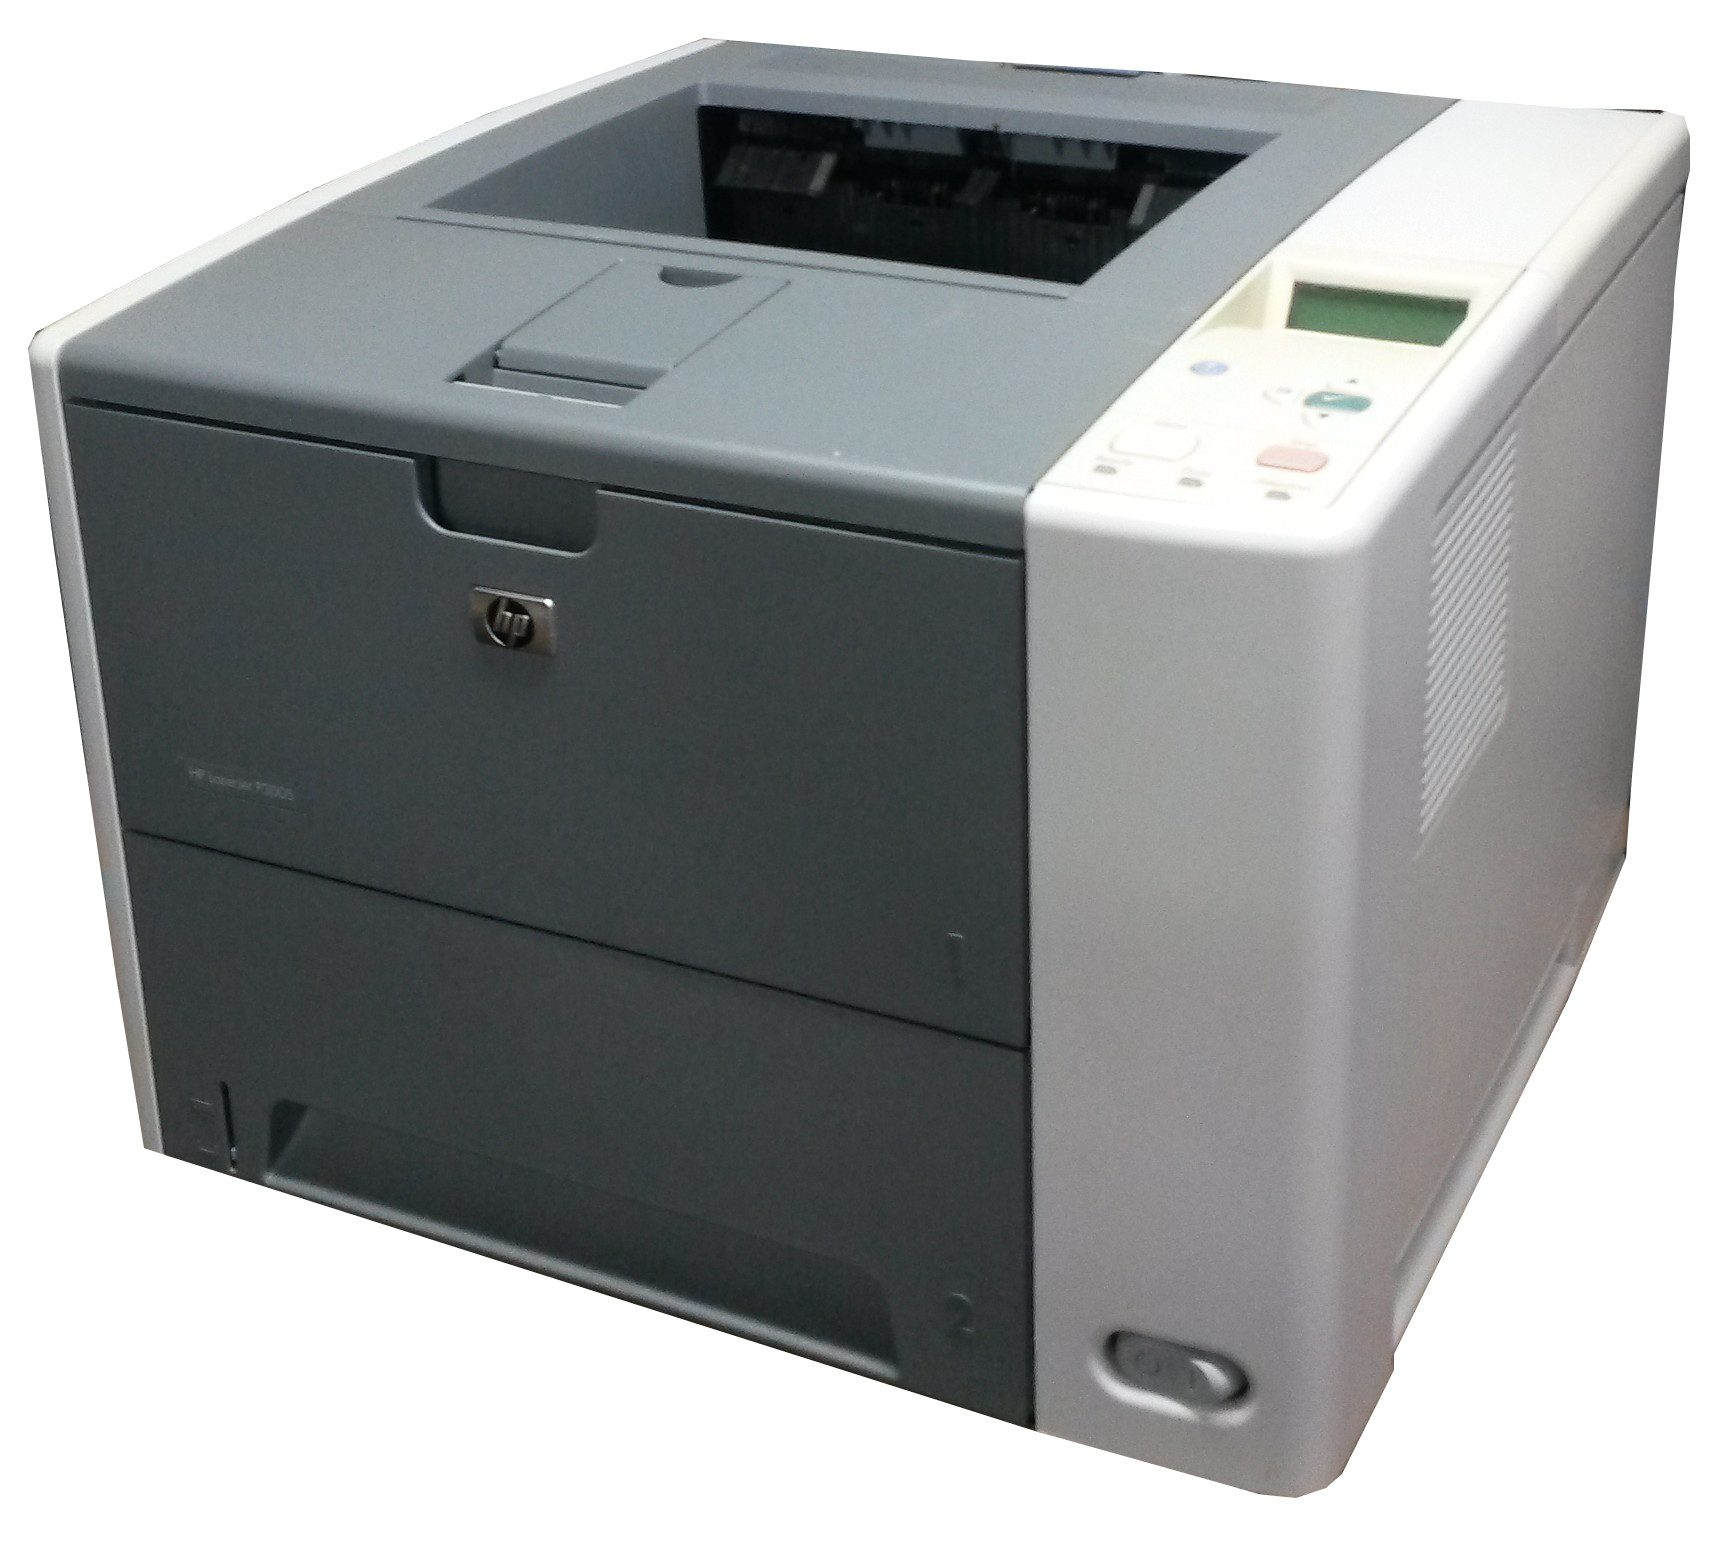 HP3005N PRINTER DESCARGAR CONTROLADOR